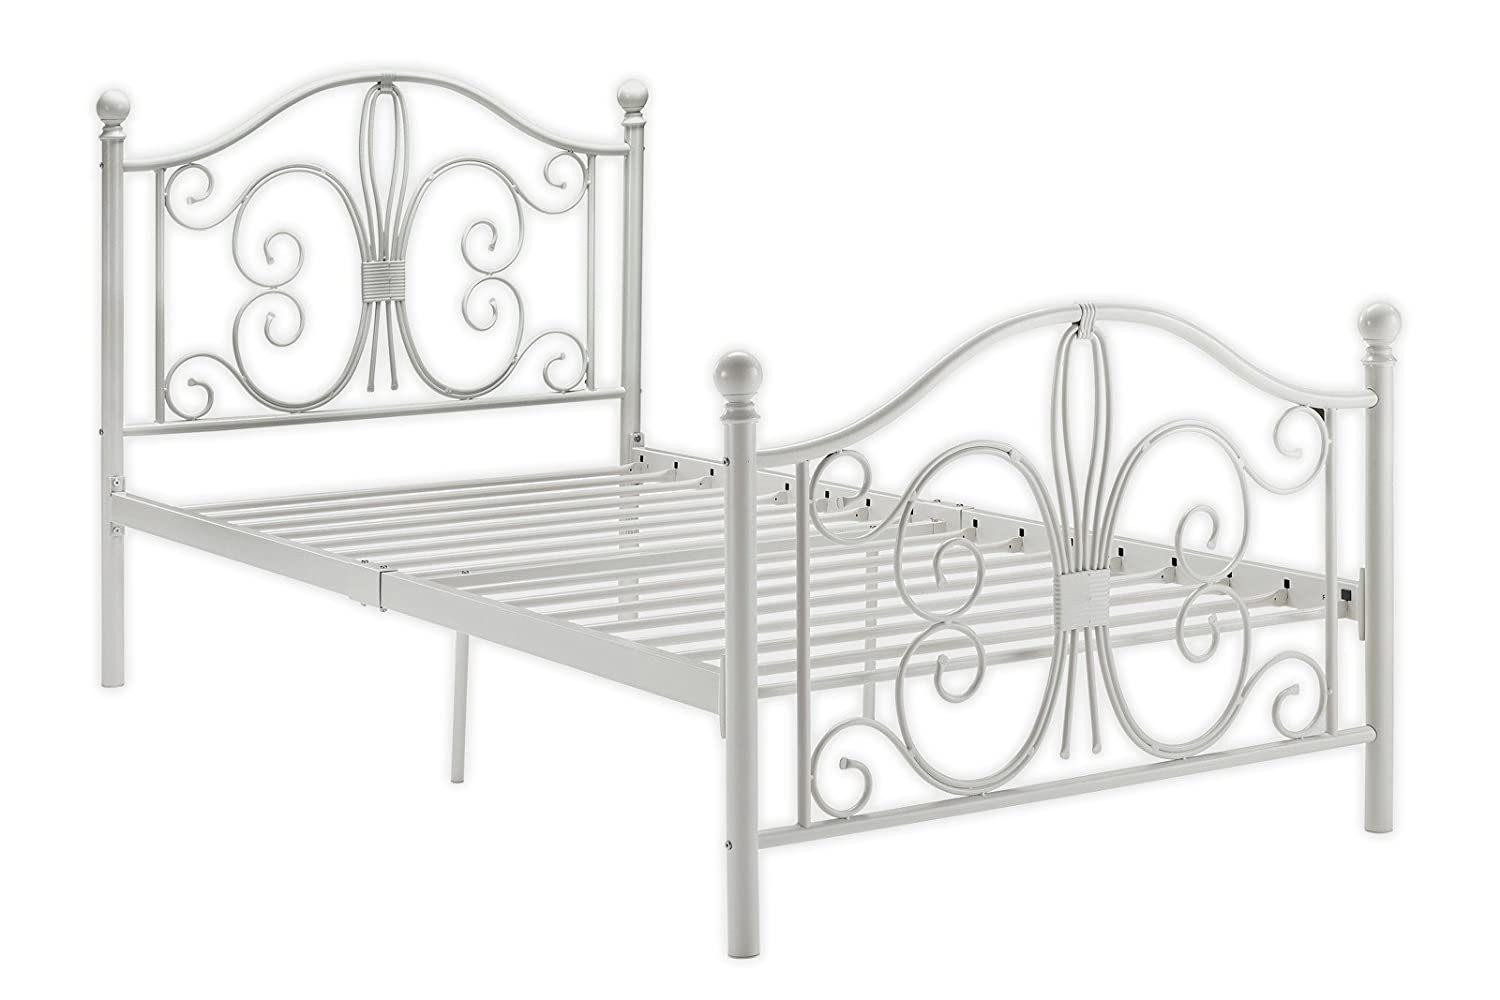 DHP Bombay Metal Bed Frame  Vintage Design and Includes Metal Slats  Twin  Size. Beds   Amazon com